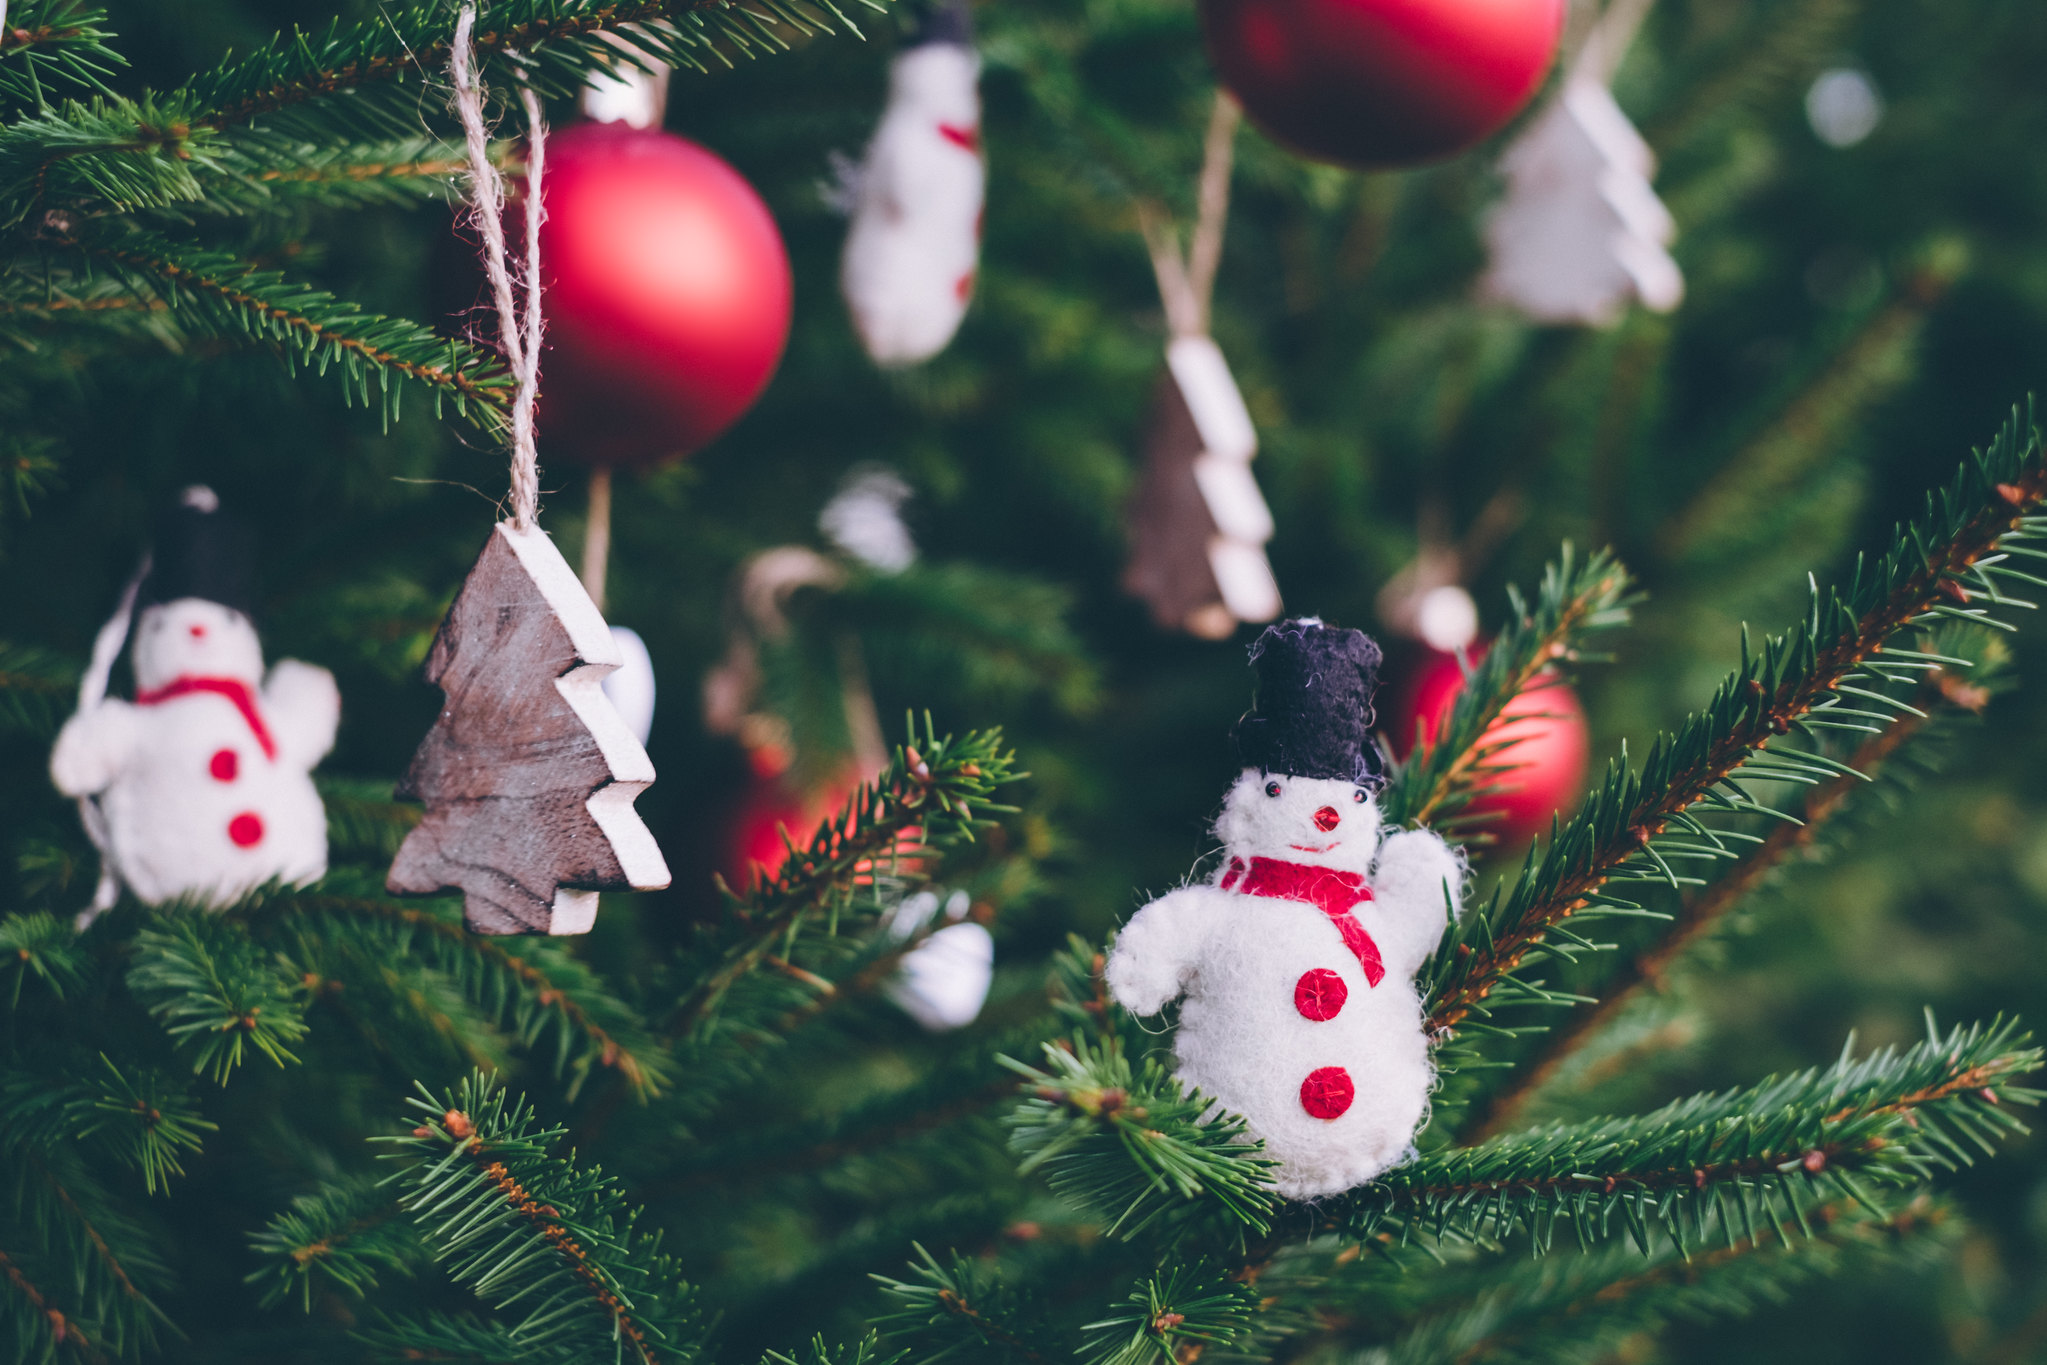 An image of Christmas tree decorations.